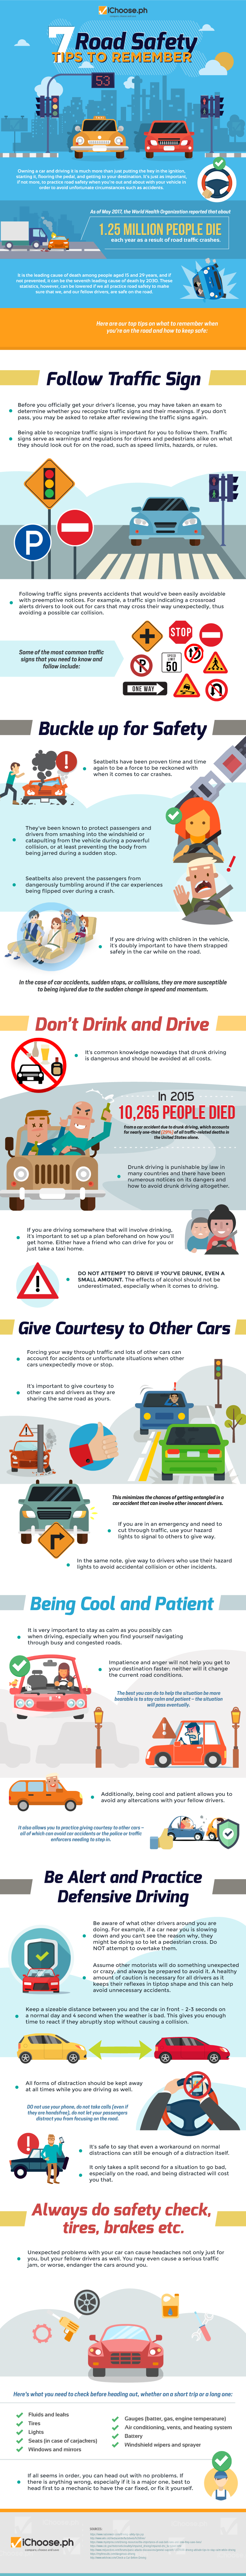 7 Road Safety Tips to Remember